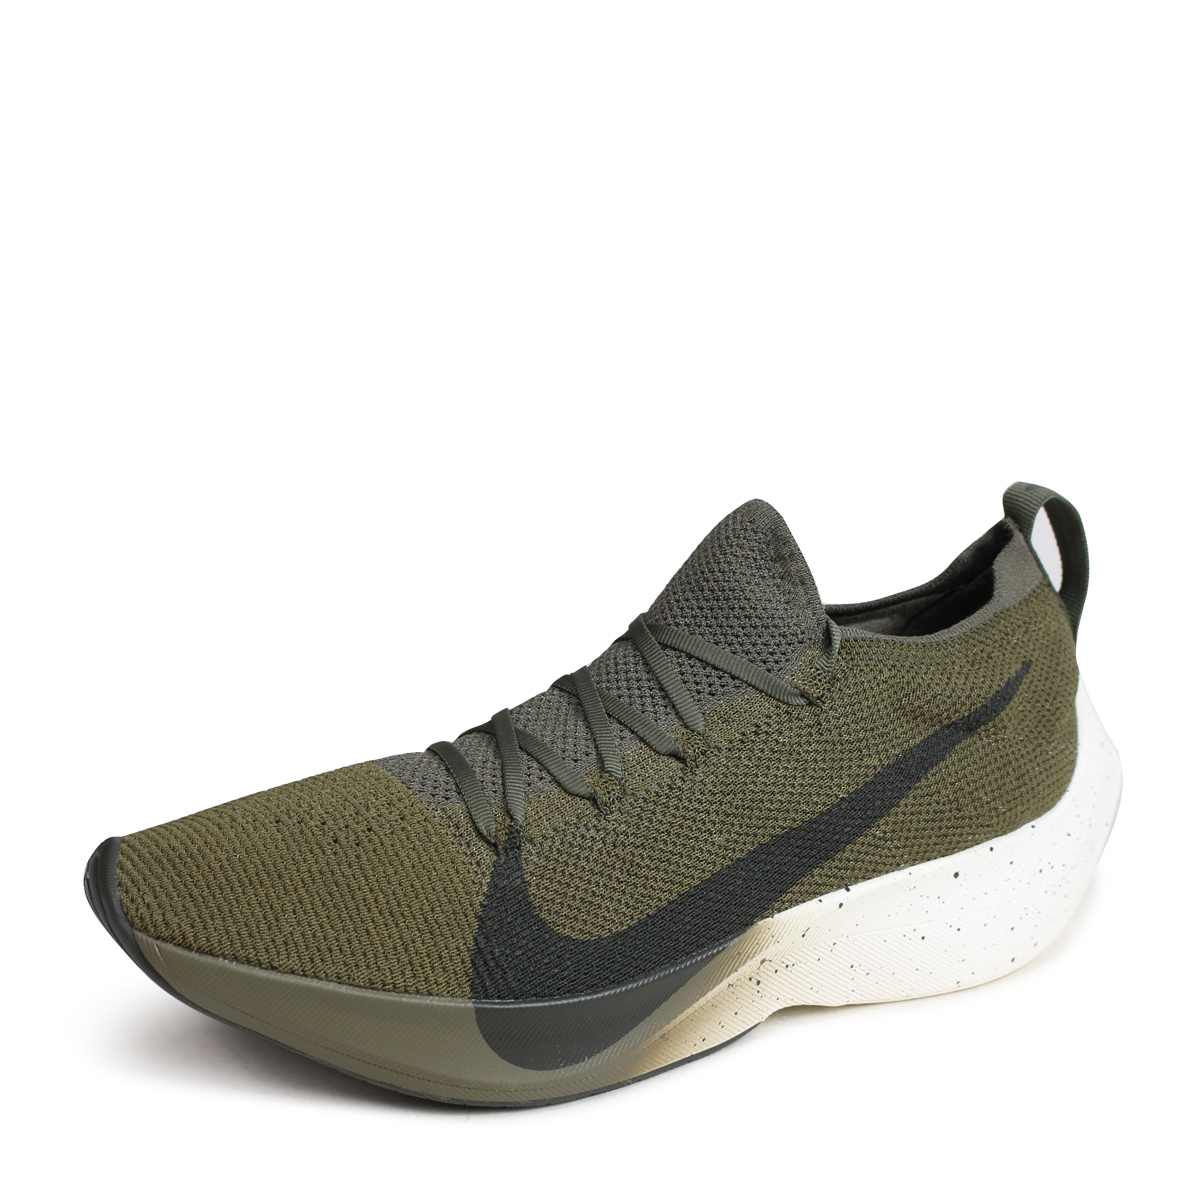 20e7325aca21 NIKE VAPOR STREET FLYKNIT Nike vapor street sneakers men AQ1763-201 olive   load planned Shinnyu load in reservation product 5 31 containing   185